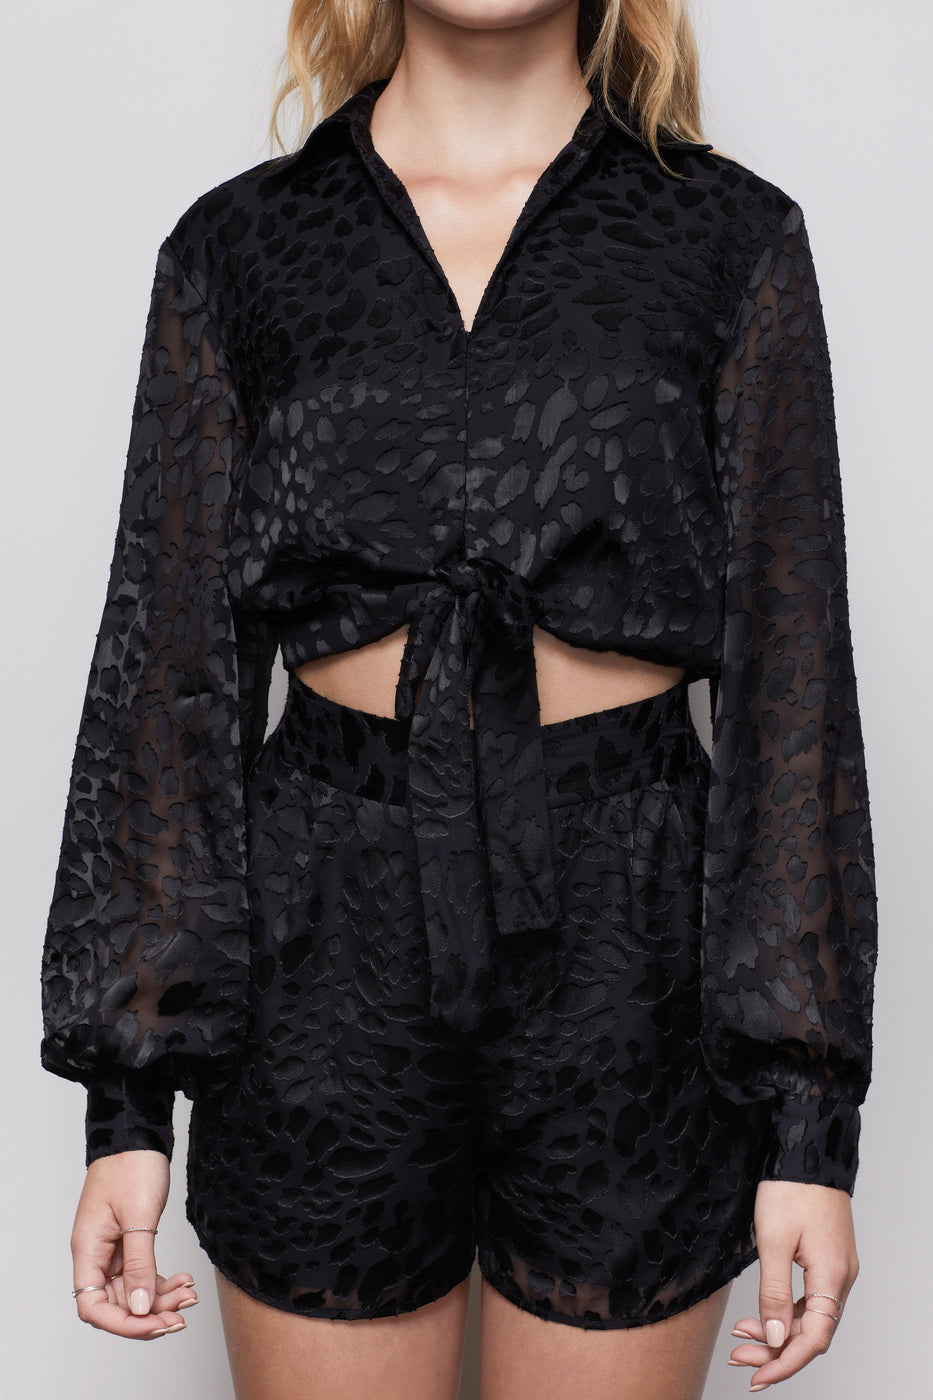 THE MIDNIGHT LEOPARD BURNOUT TOP | BLACK001